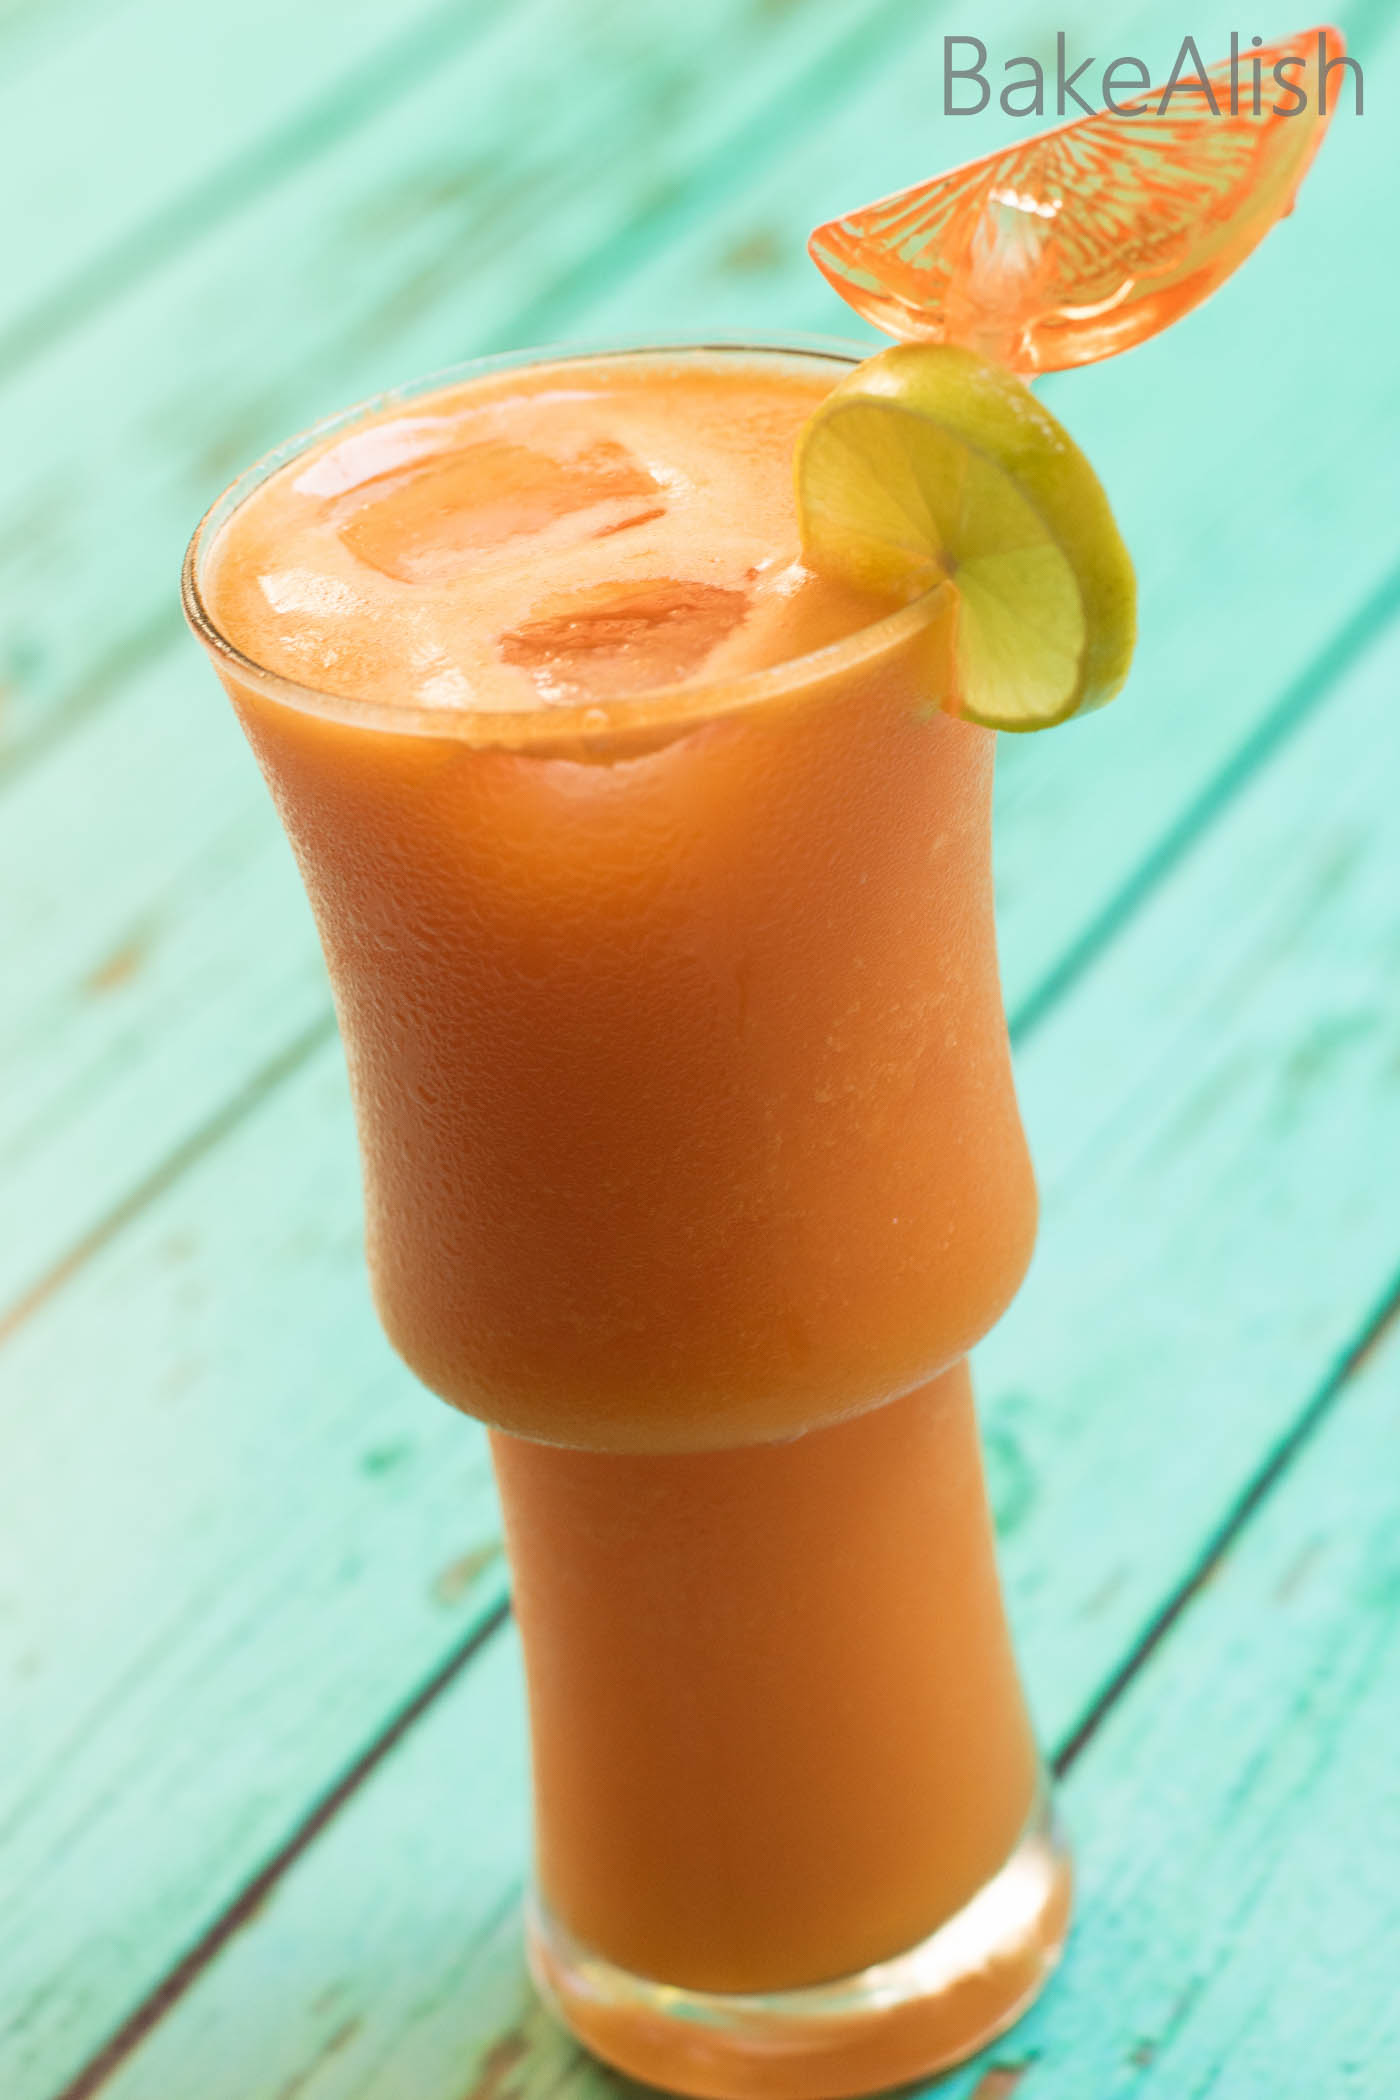 The Tropical Sunrise is a juice with a blend of Pineapple, Orange, Carrot and more goodness. It's so delicious and super healthy. Filled with the goodness of veggies & fruits this blend is yum and a perfect start to a busy day.